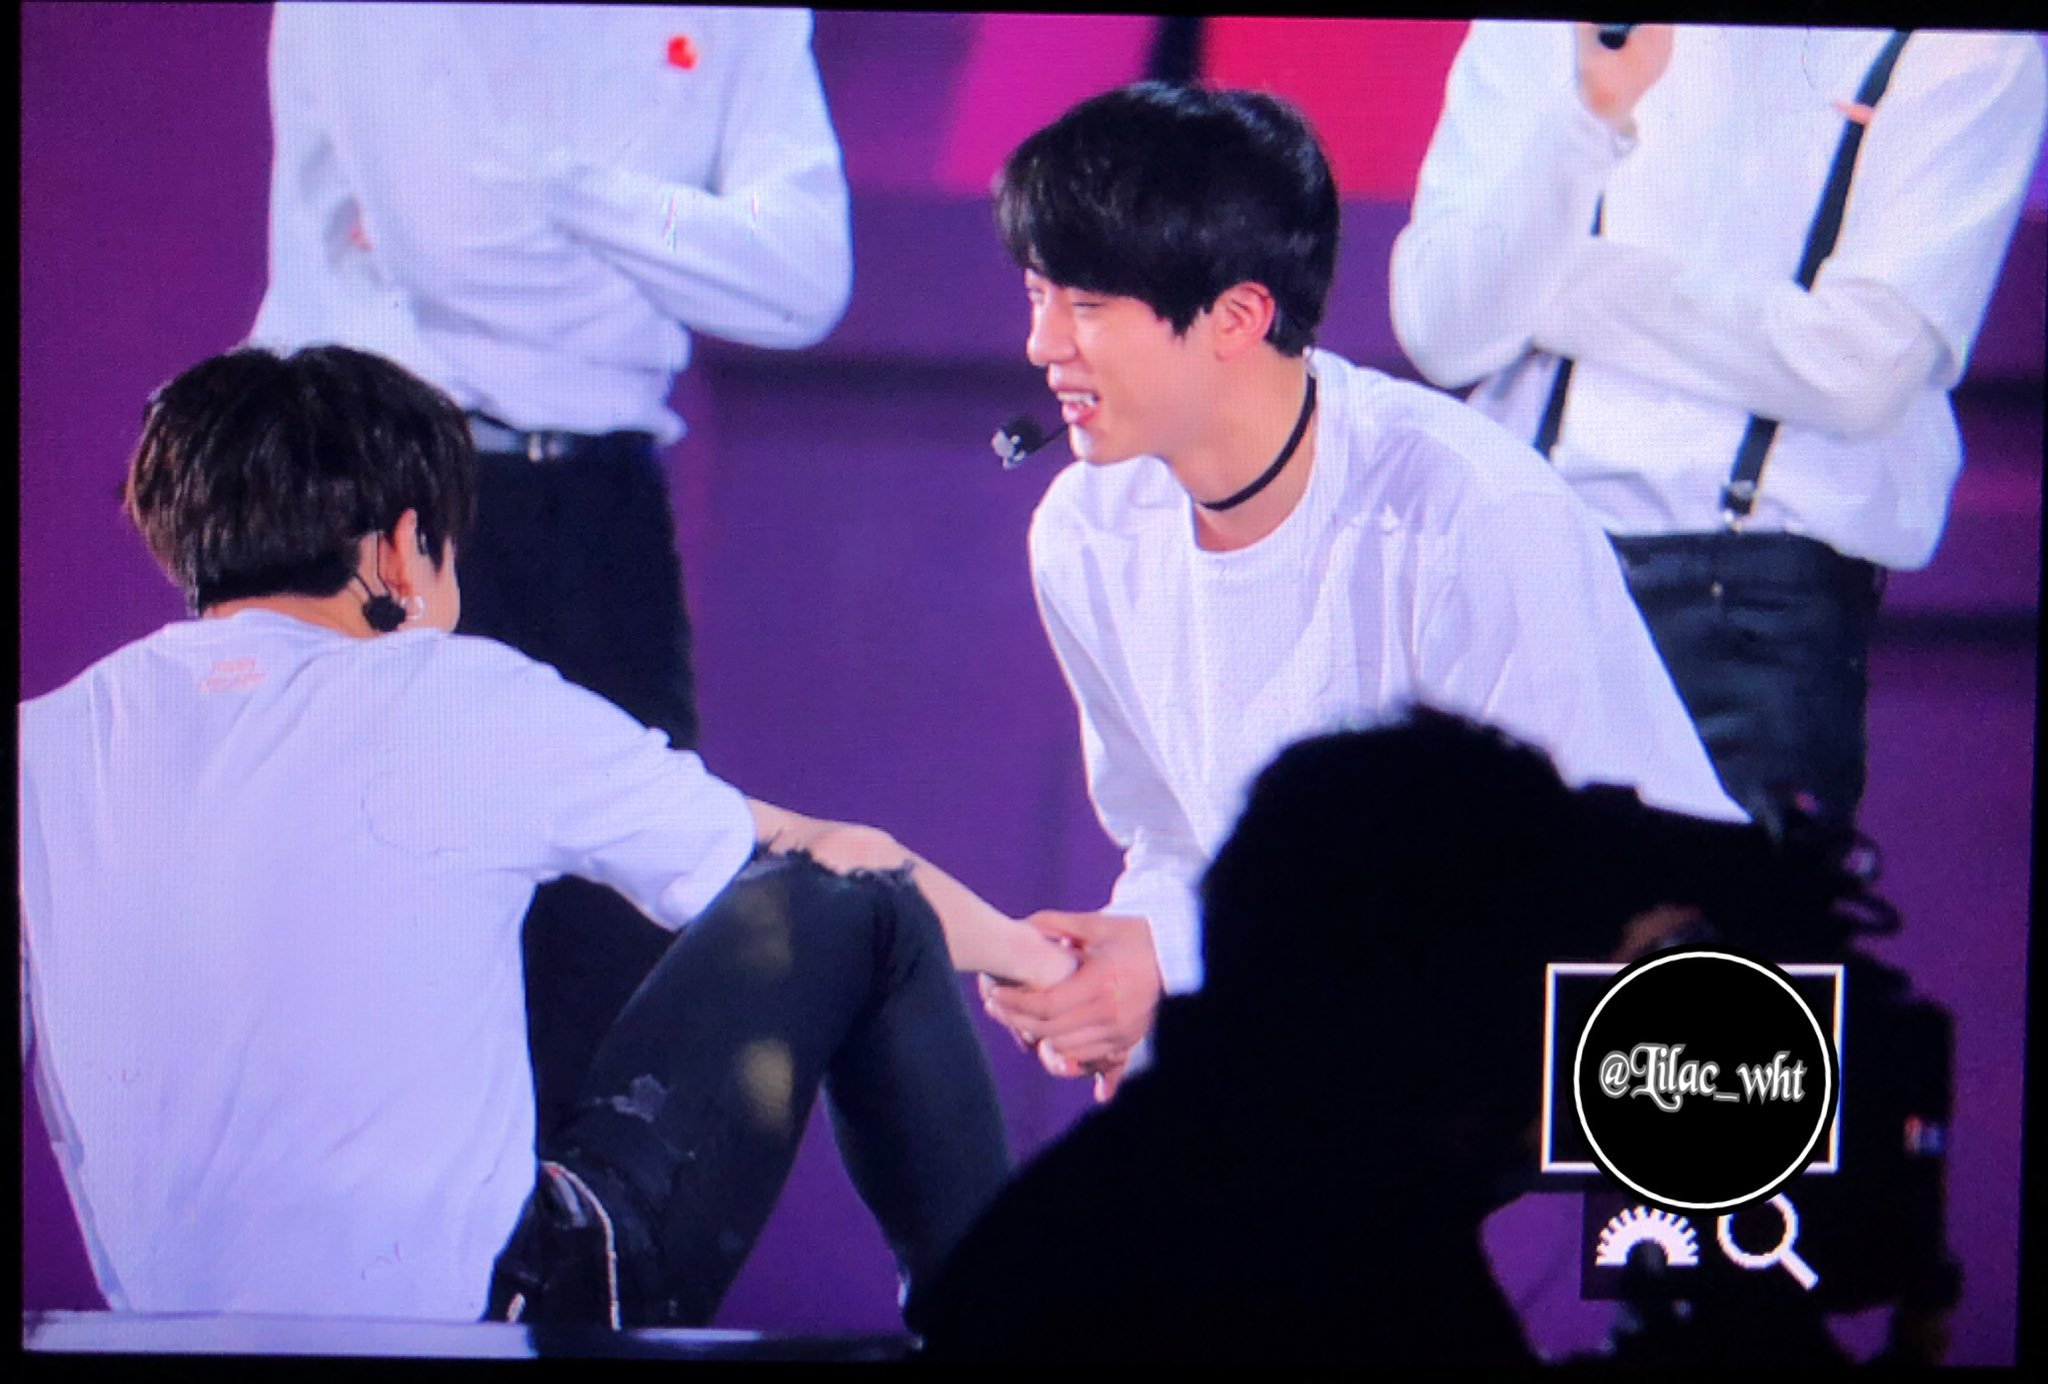 [PREVIEW] 180114  #BTS #jungkook #JIN at 4th MUSTER Happy Ever After https://t.co/clH4cIS7ZW